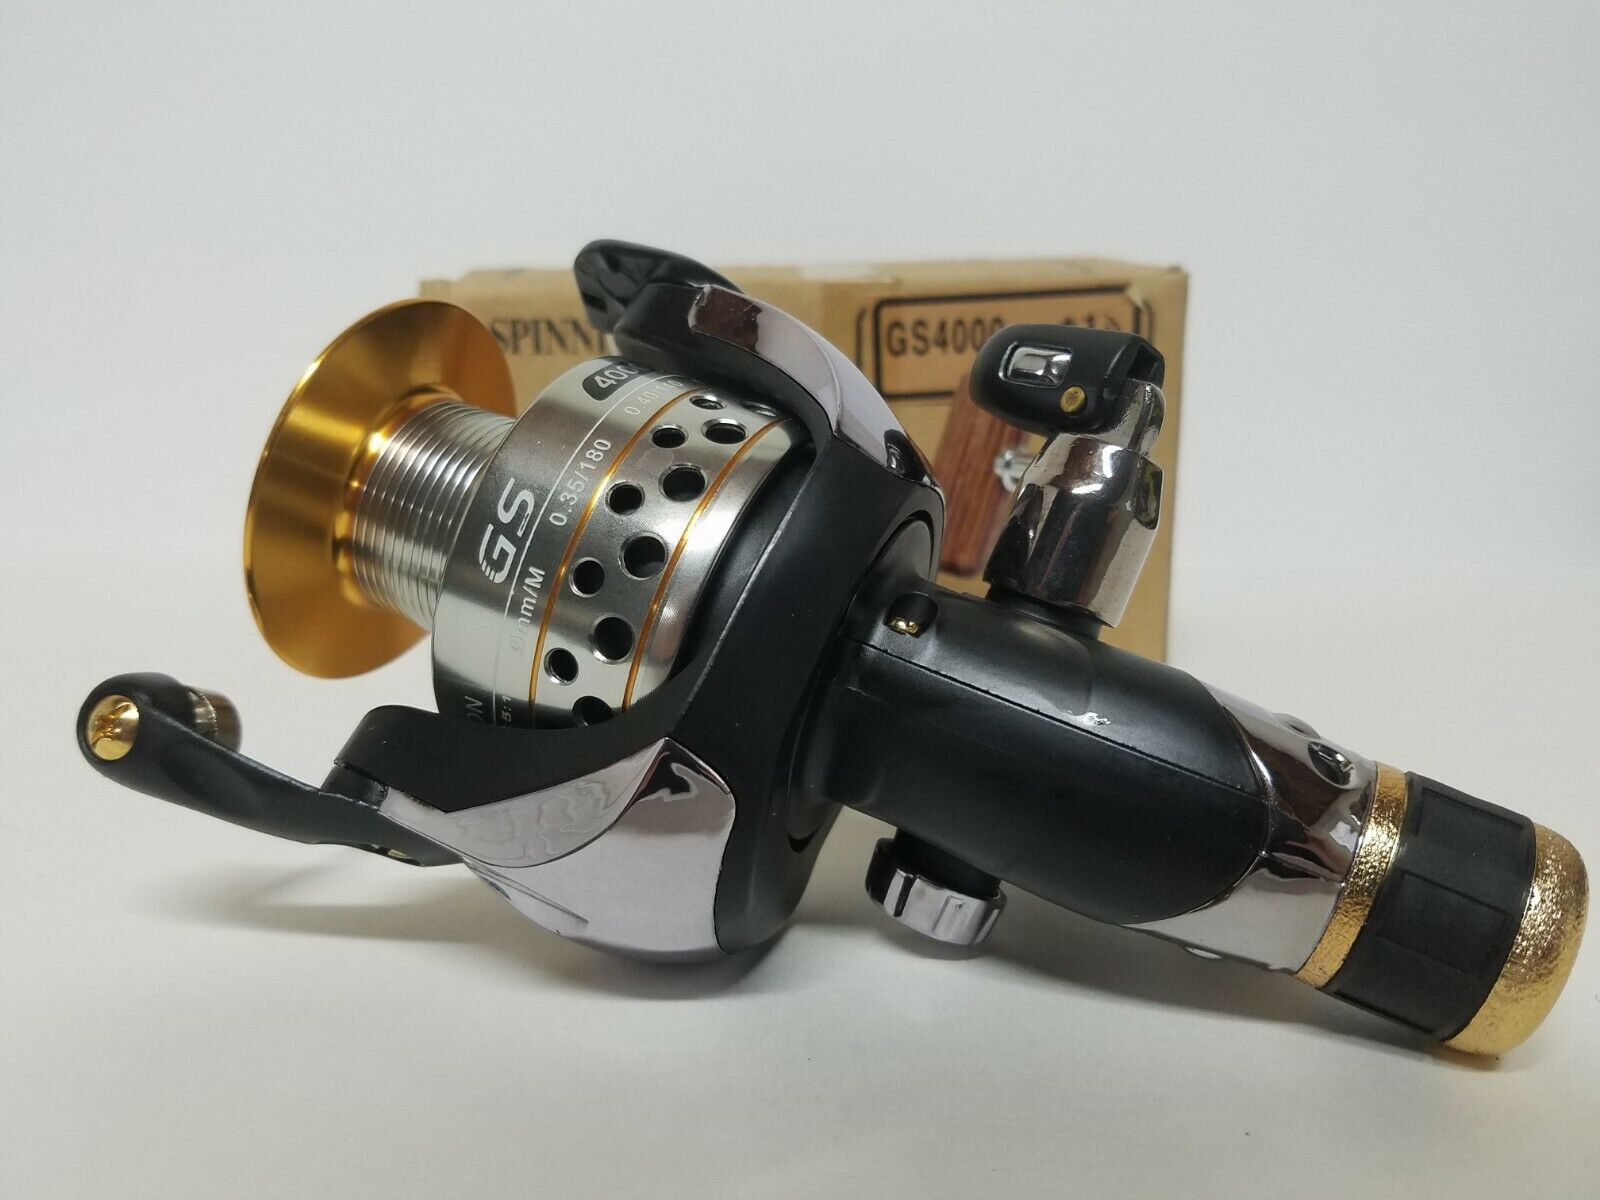 NEW Seahawker Seahawker Seahawker GS4000 Spinning Fishing Reel 3ff24d